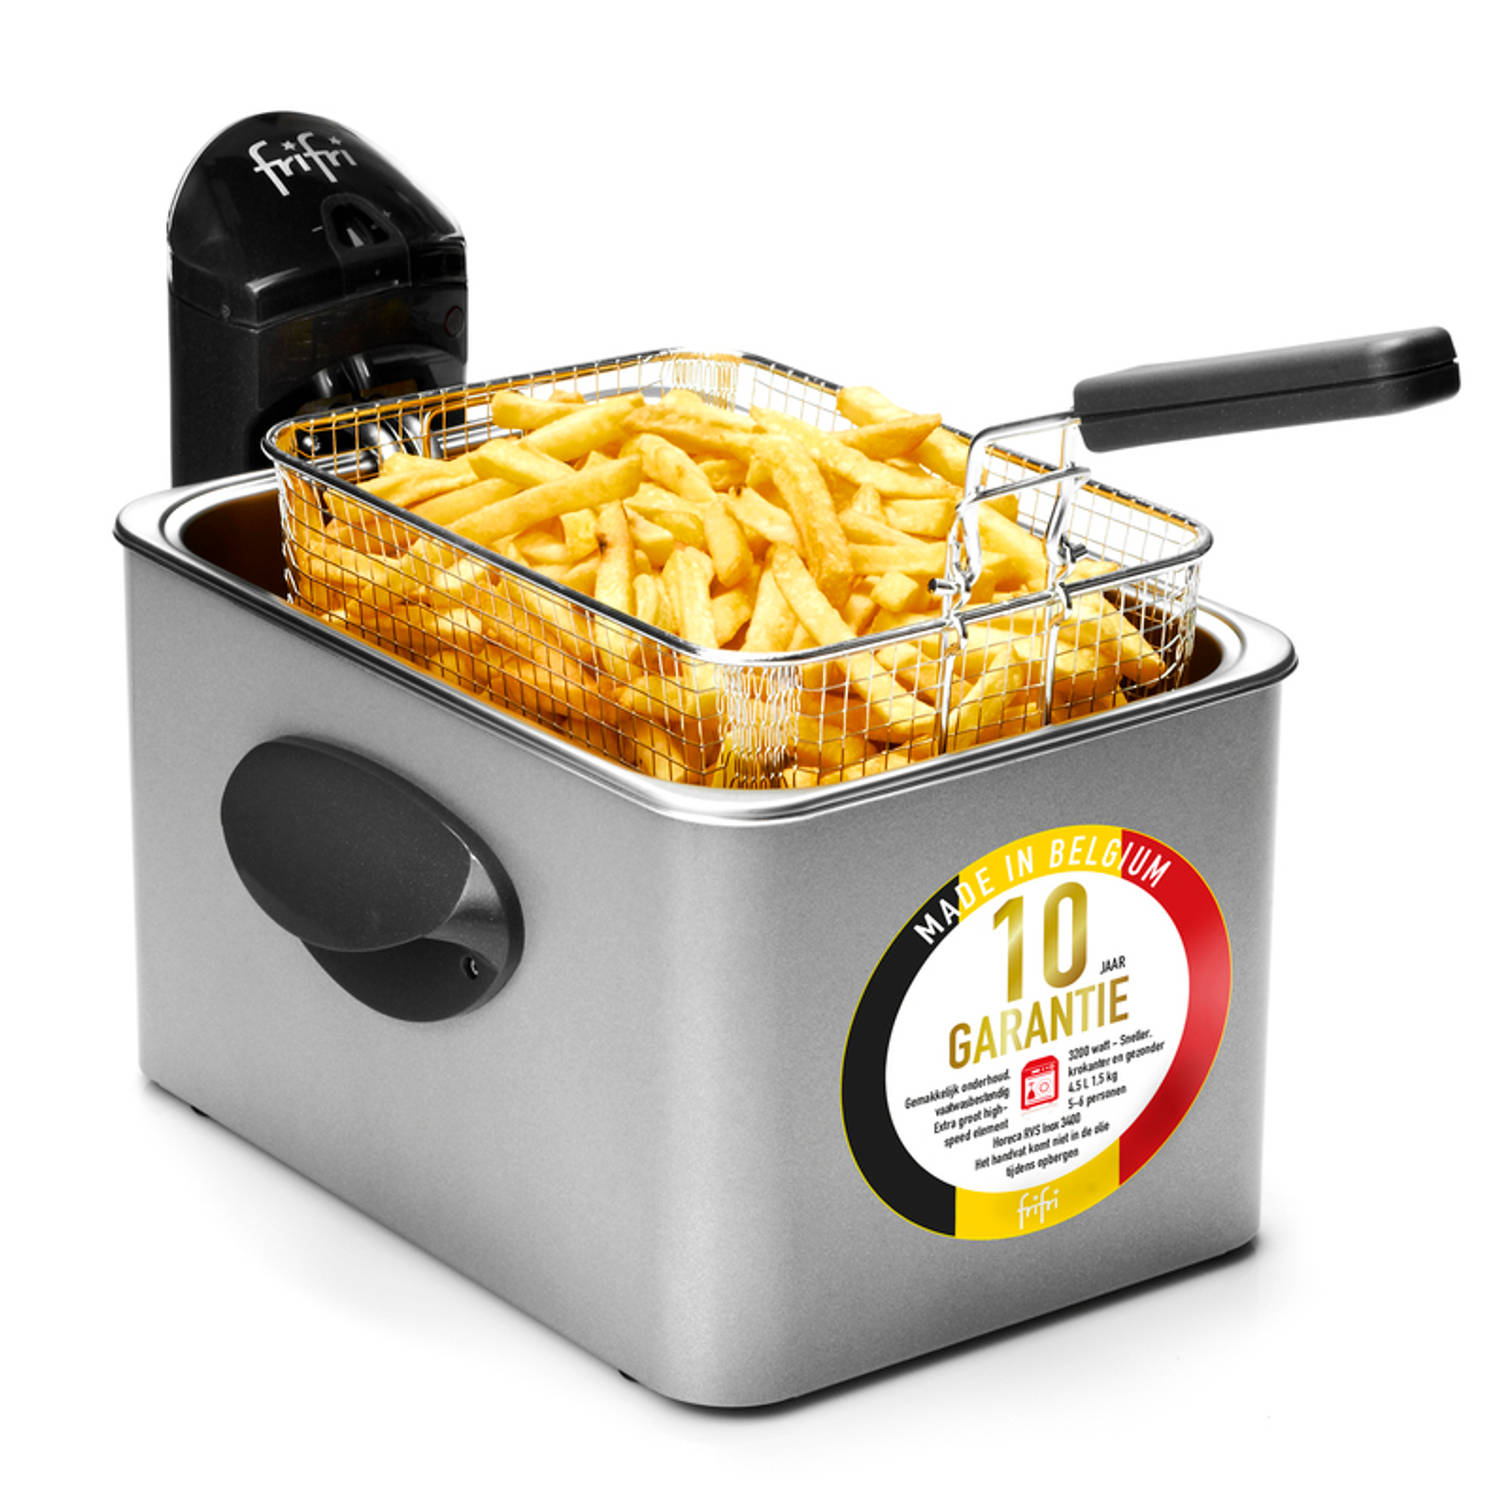 FriFri 4532RVS - HSCF5250 High speed classic family RVS 3200 Watt koude zone 4,5L friteuse